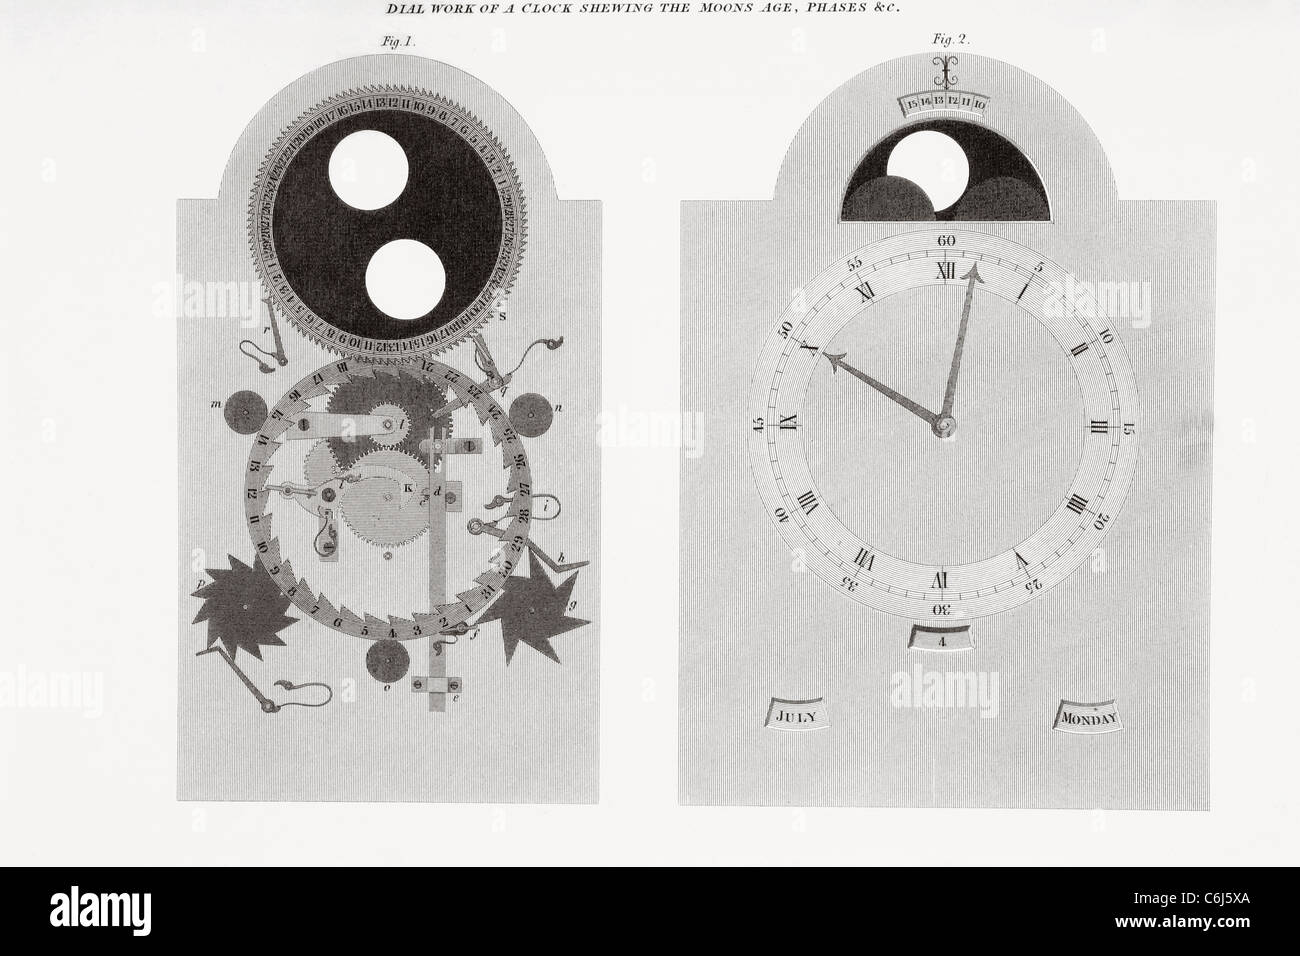 Dial work of a clock showing moon's age, phases, etc. - Stock Image